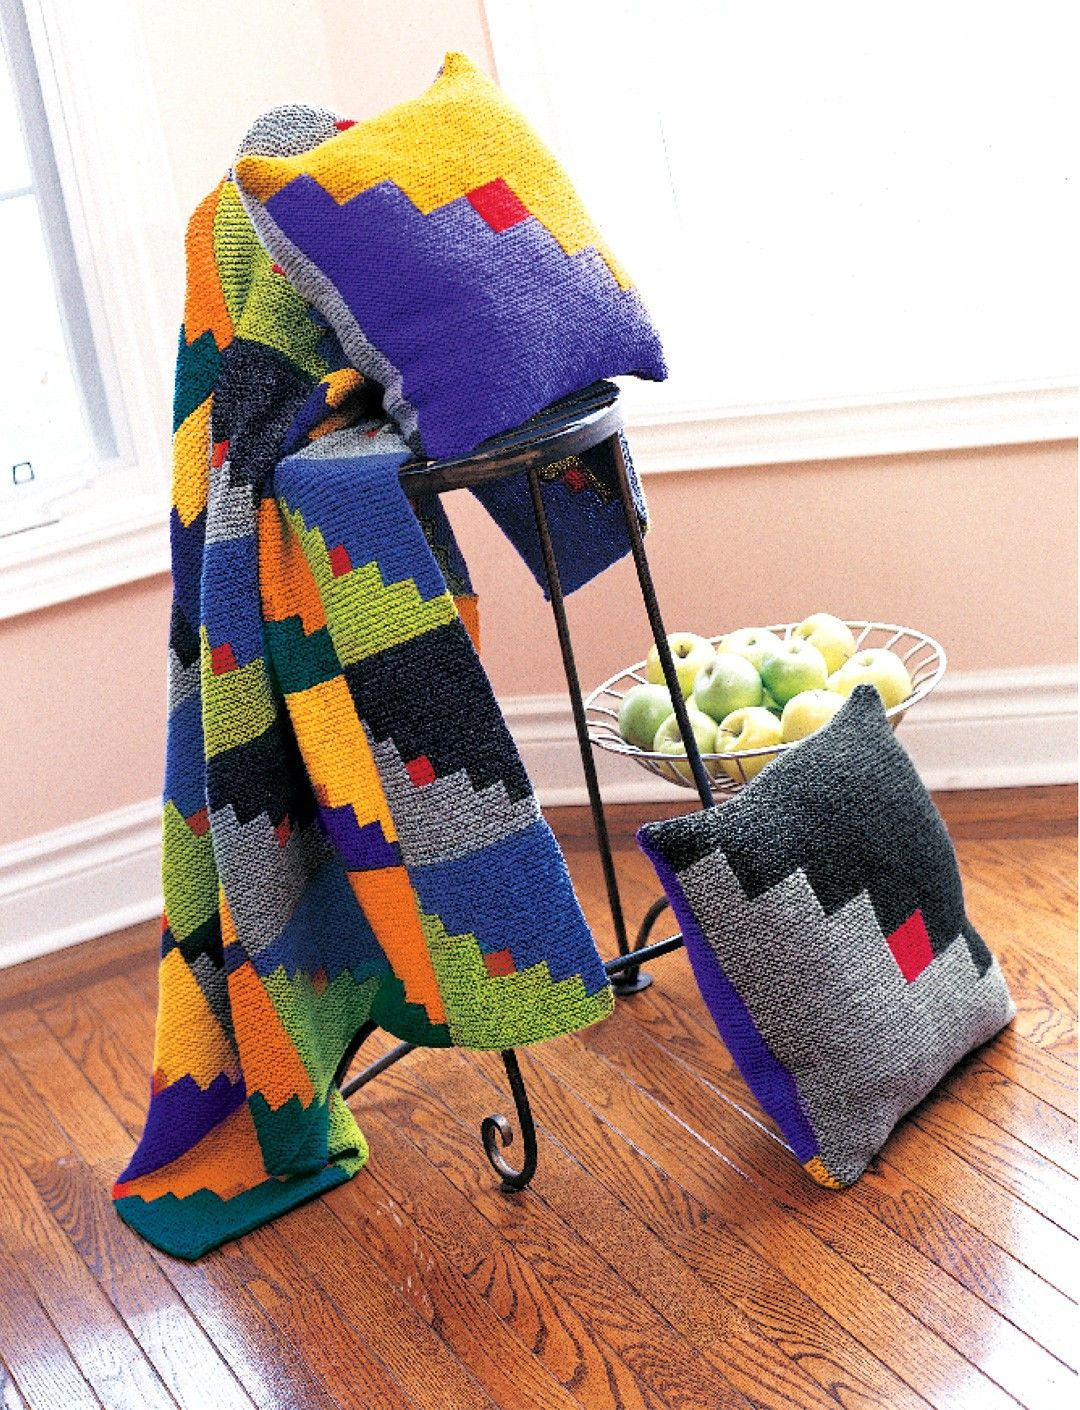 Yarnspirations patons graphic blocks patterns graphic blocks blanket and pillow in patons canadiana discover more patterns by patons at loveknitting the worlds largest range of knitting supplies we bankloansurffo Image collections